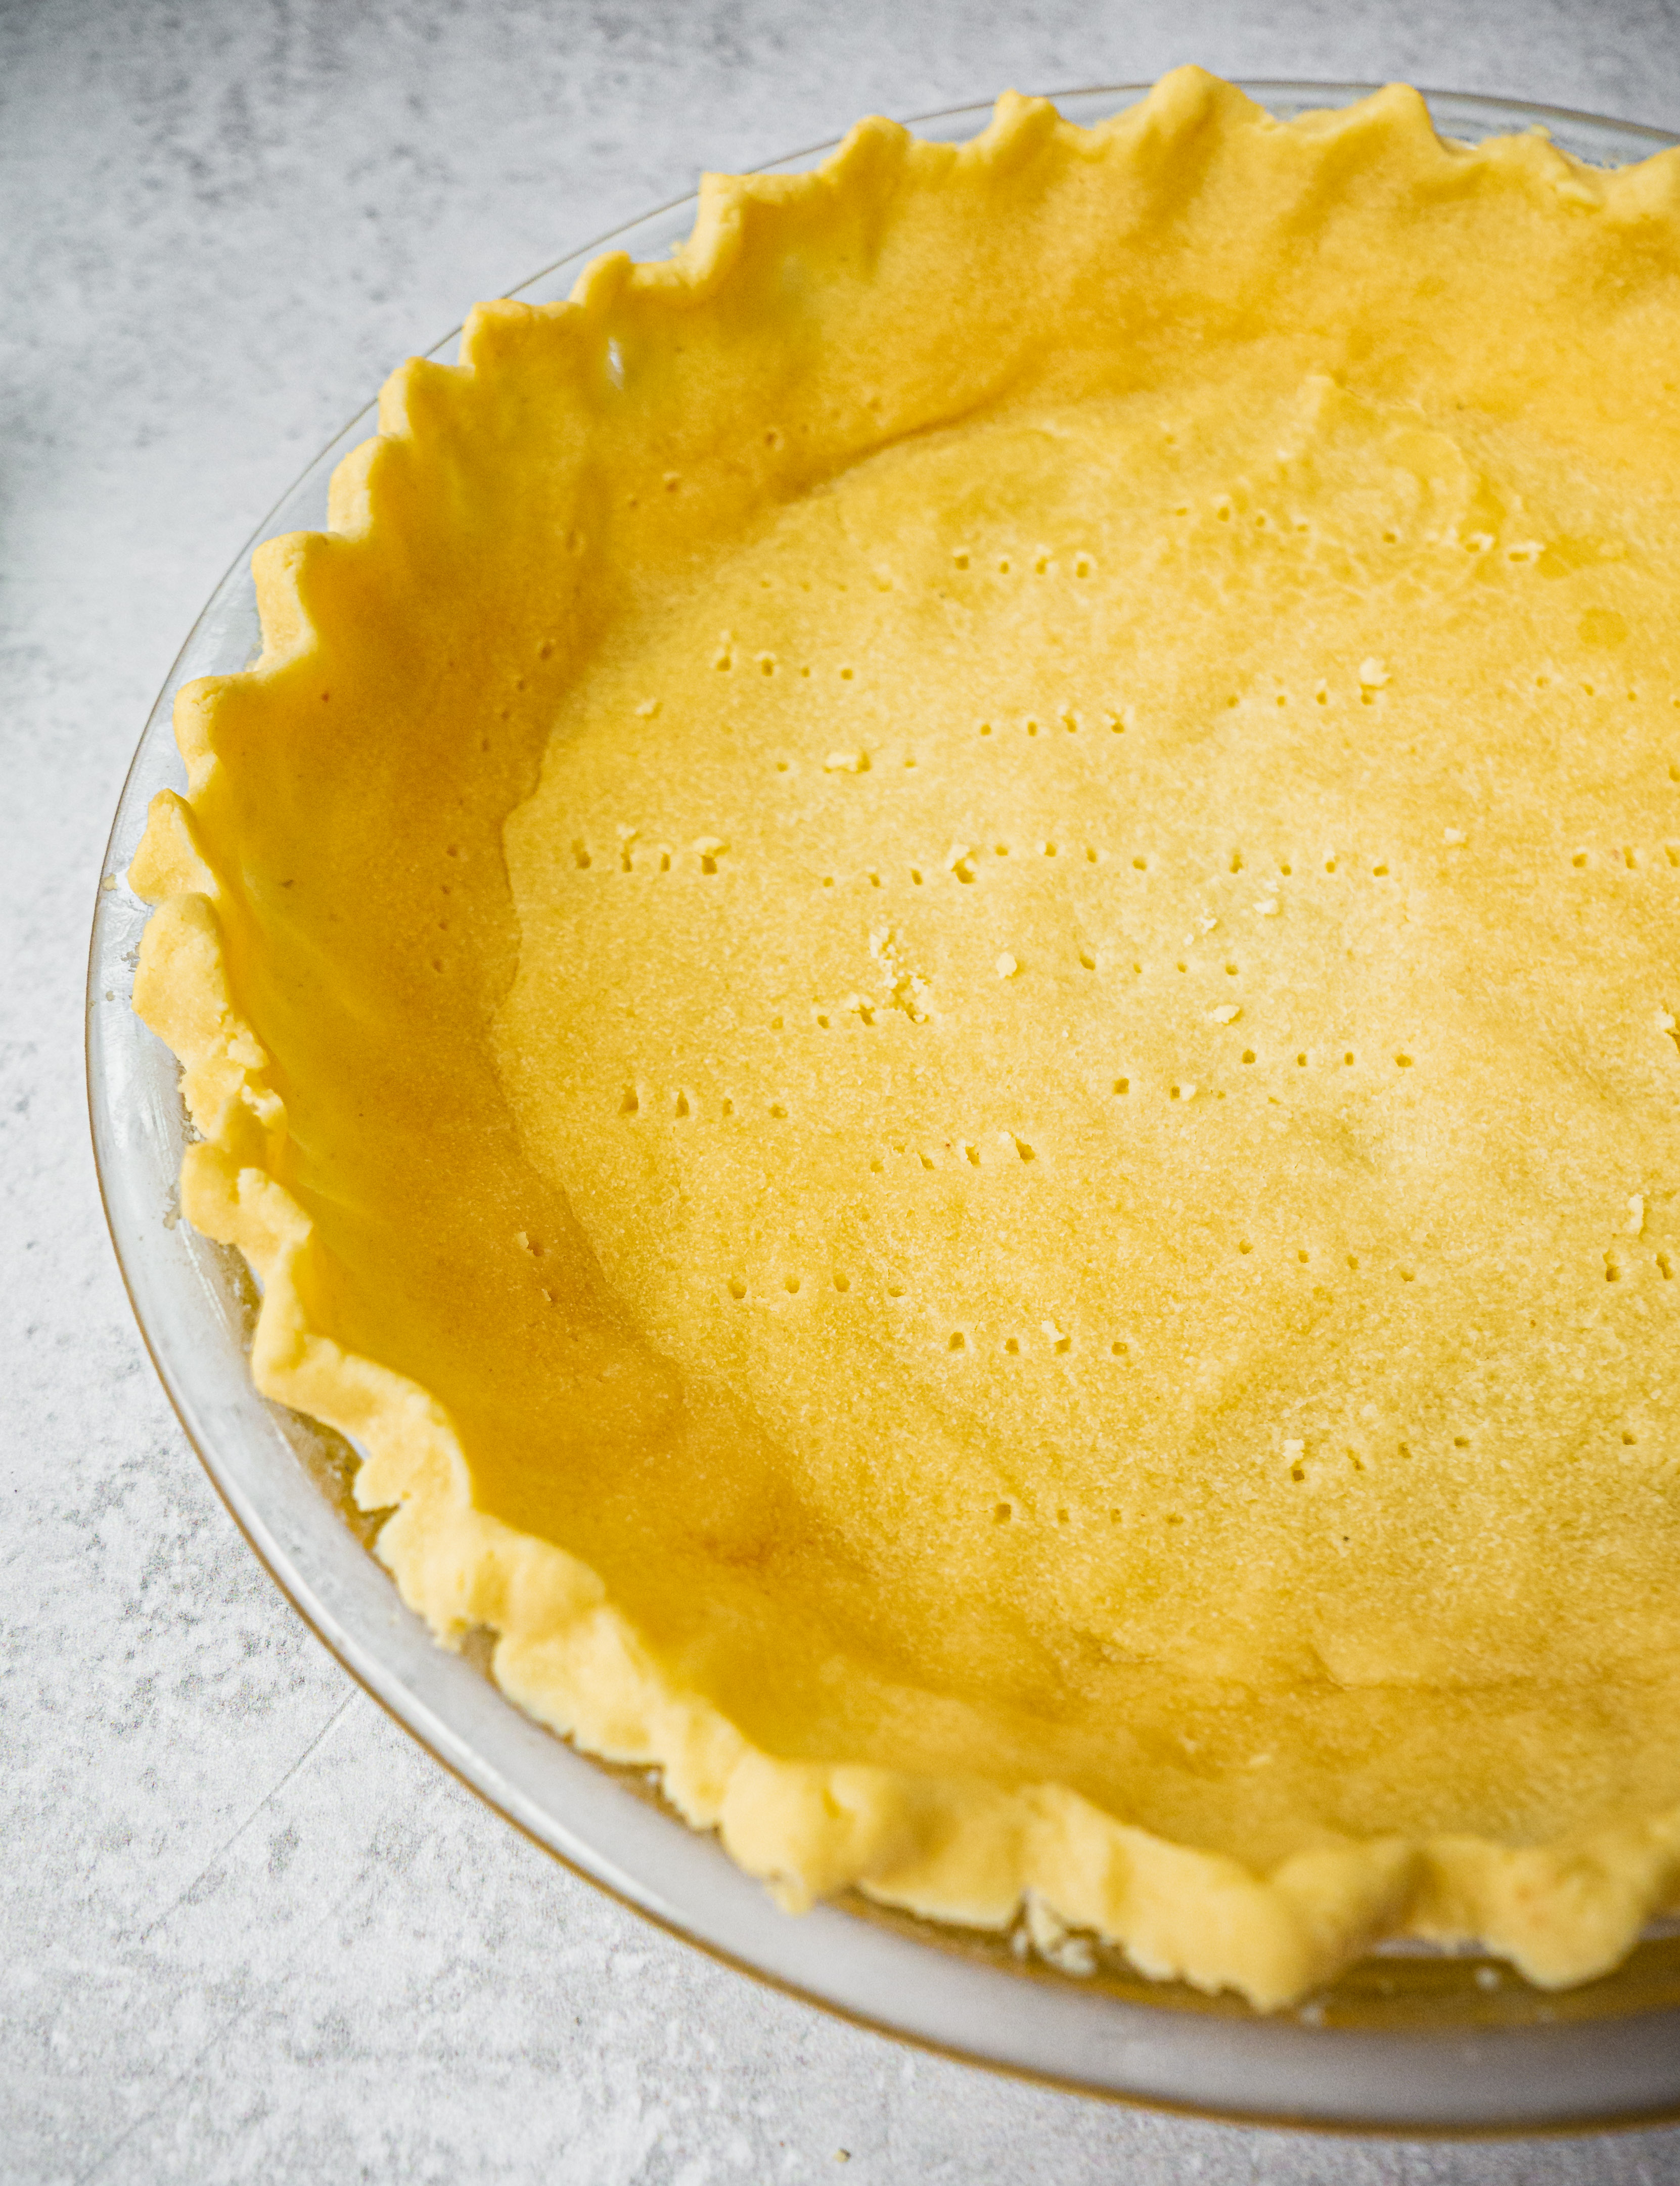 Cooked flaky and buttery paleo gluten free pie crust.